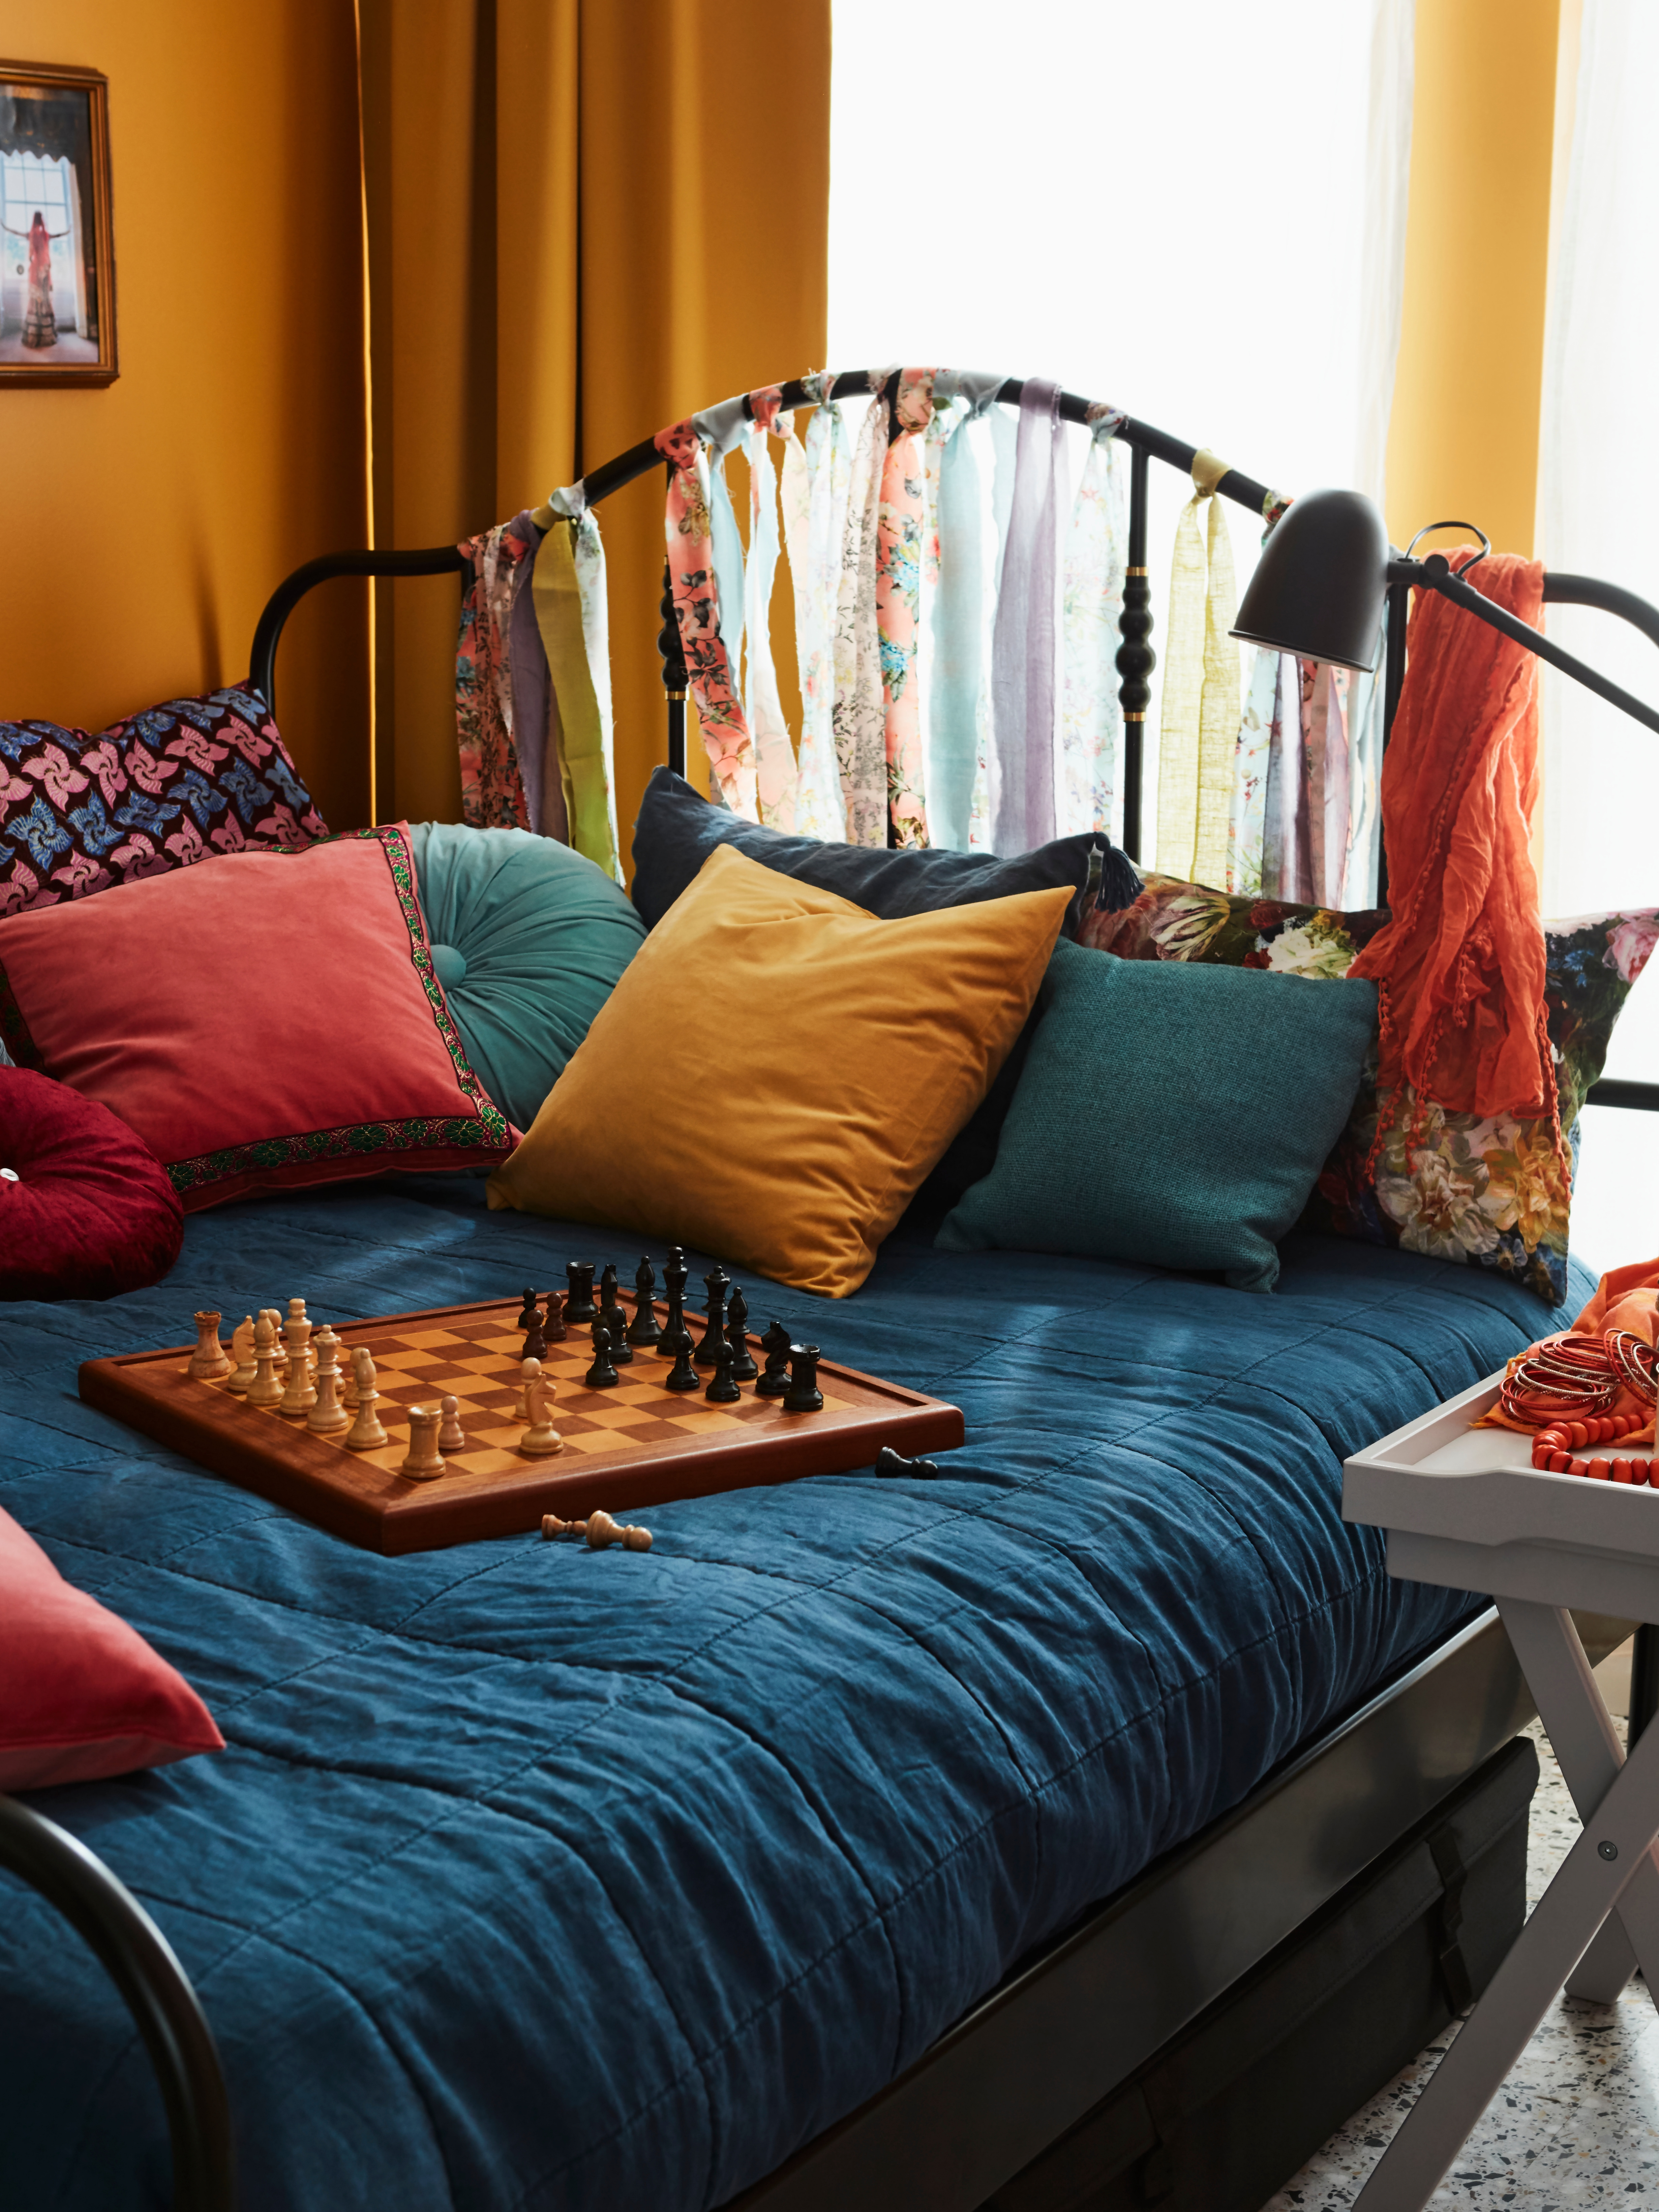 A colourfully made bed is used like a sofa with cushions and a chess game on top of a black-coated steel SAGSTUA bed frame.